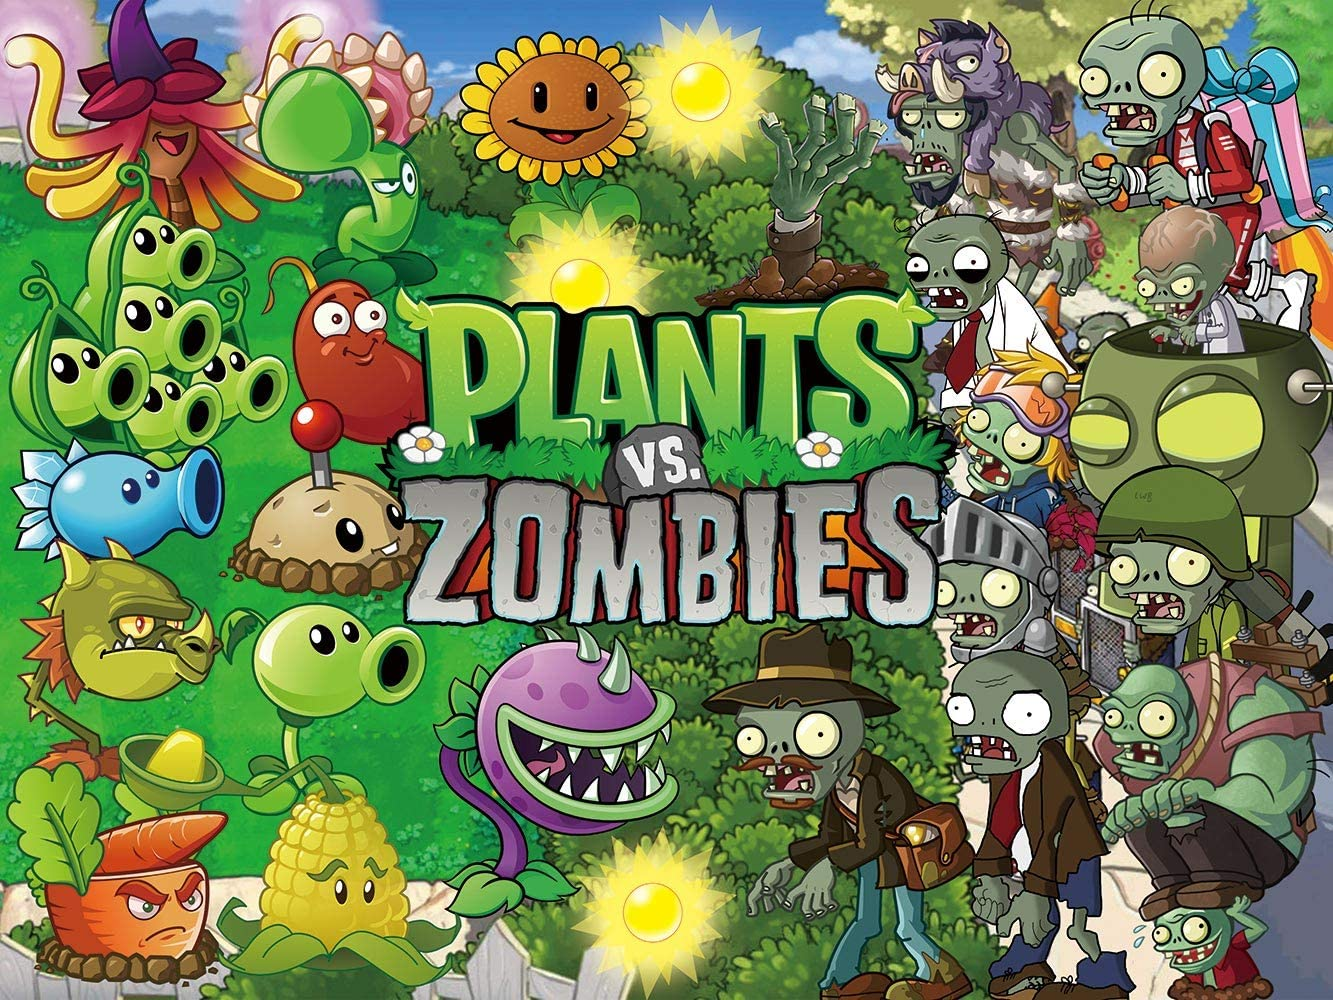 Plants and Zombie Backdrop PVZ Poster Plants vs. Zombies Supplies for 1st Boys Newborn Kids Baby Shower Party Home Decorations Background Studio Photography Photo Props Banner